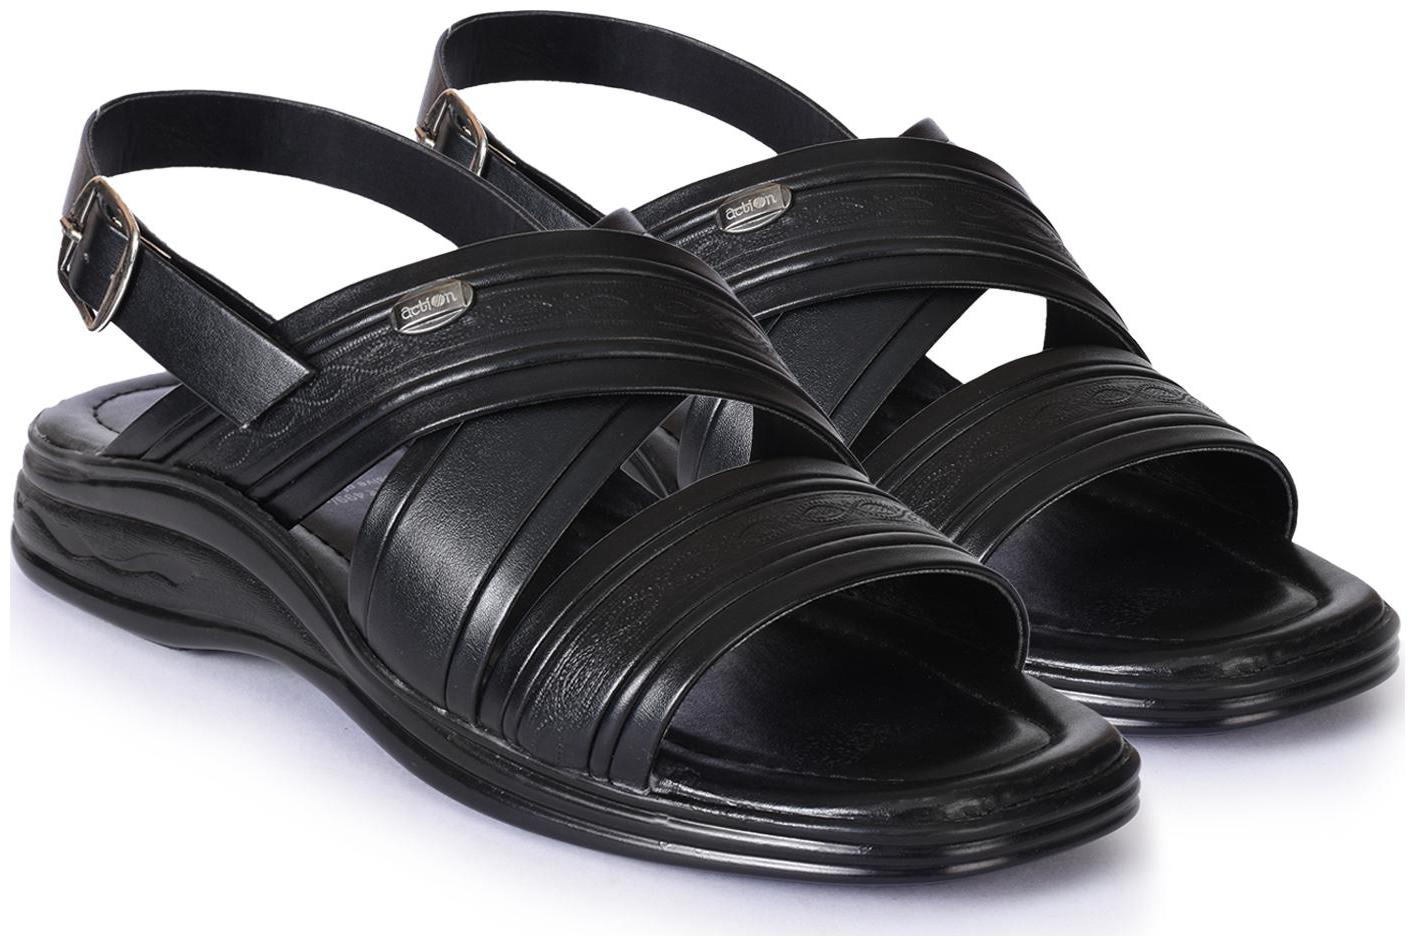 https://assetscdn1.paytm.com/images/catalog/product/F/FO/FOOACTION-SHOESMICR556415975873F/1563407589063_0..jpg